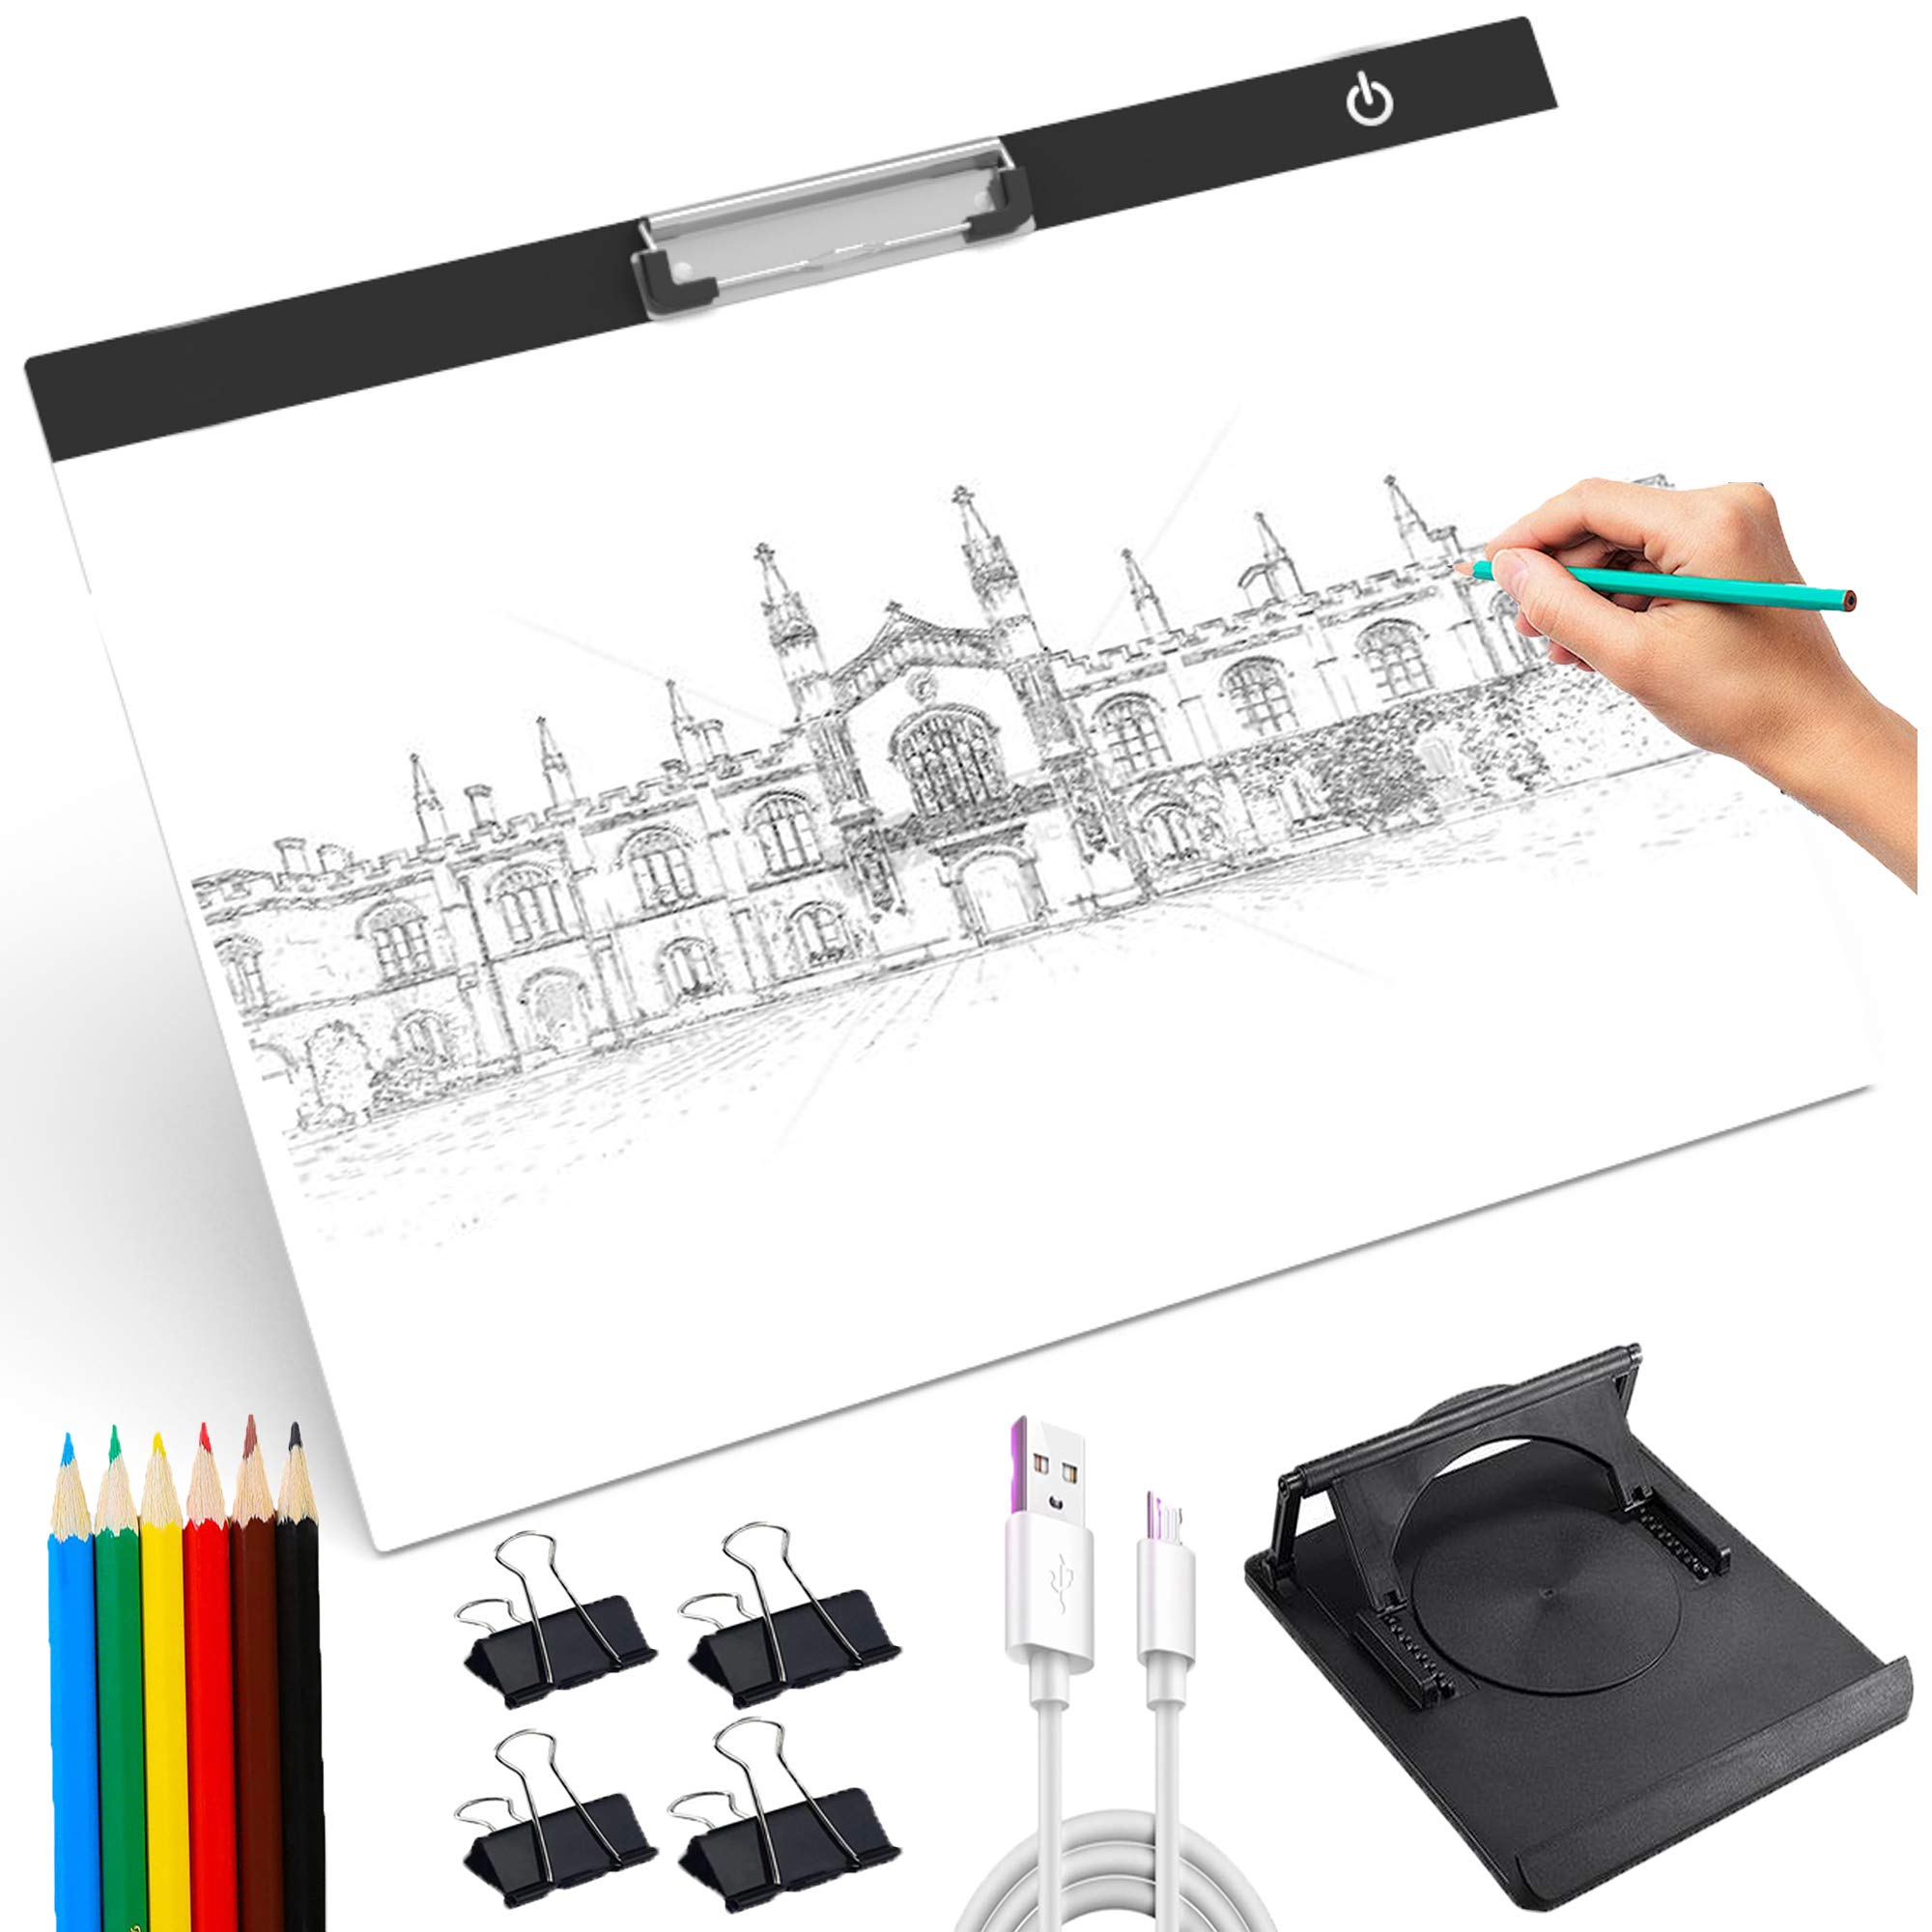 A3 Clip Light Box Tracer Kit 5V USB 3 Brightness Adjustment Light Box Bracket Led Light Pad Drawing Tablet,It is Suitable for Printing, 2D Animation, Embossing, Calligraphy,Sketching and Drawing etc. by Jaydear